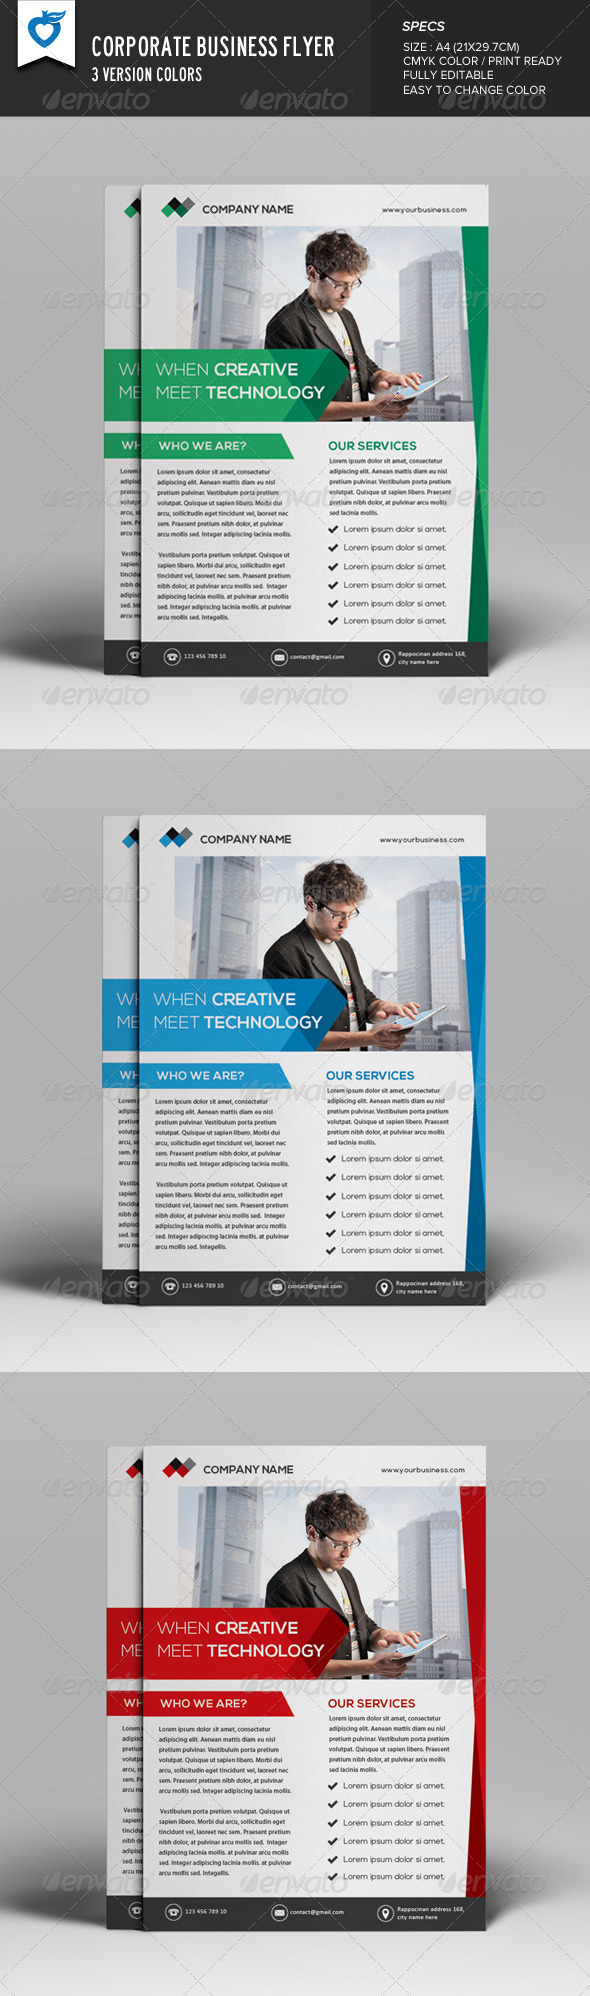 GraphicRiver Corporate Business Flyer v17 8180663